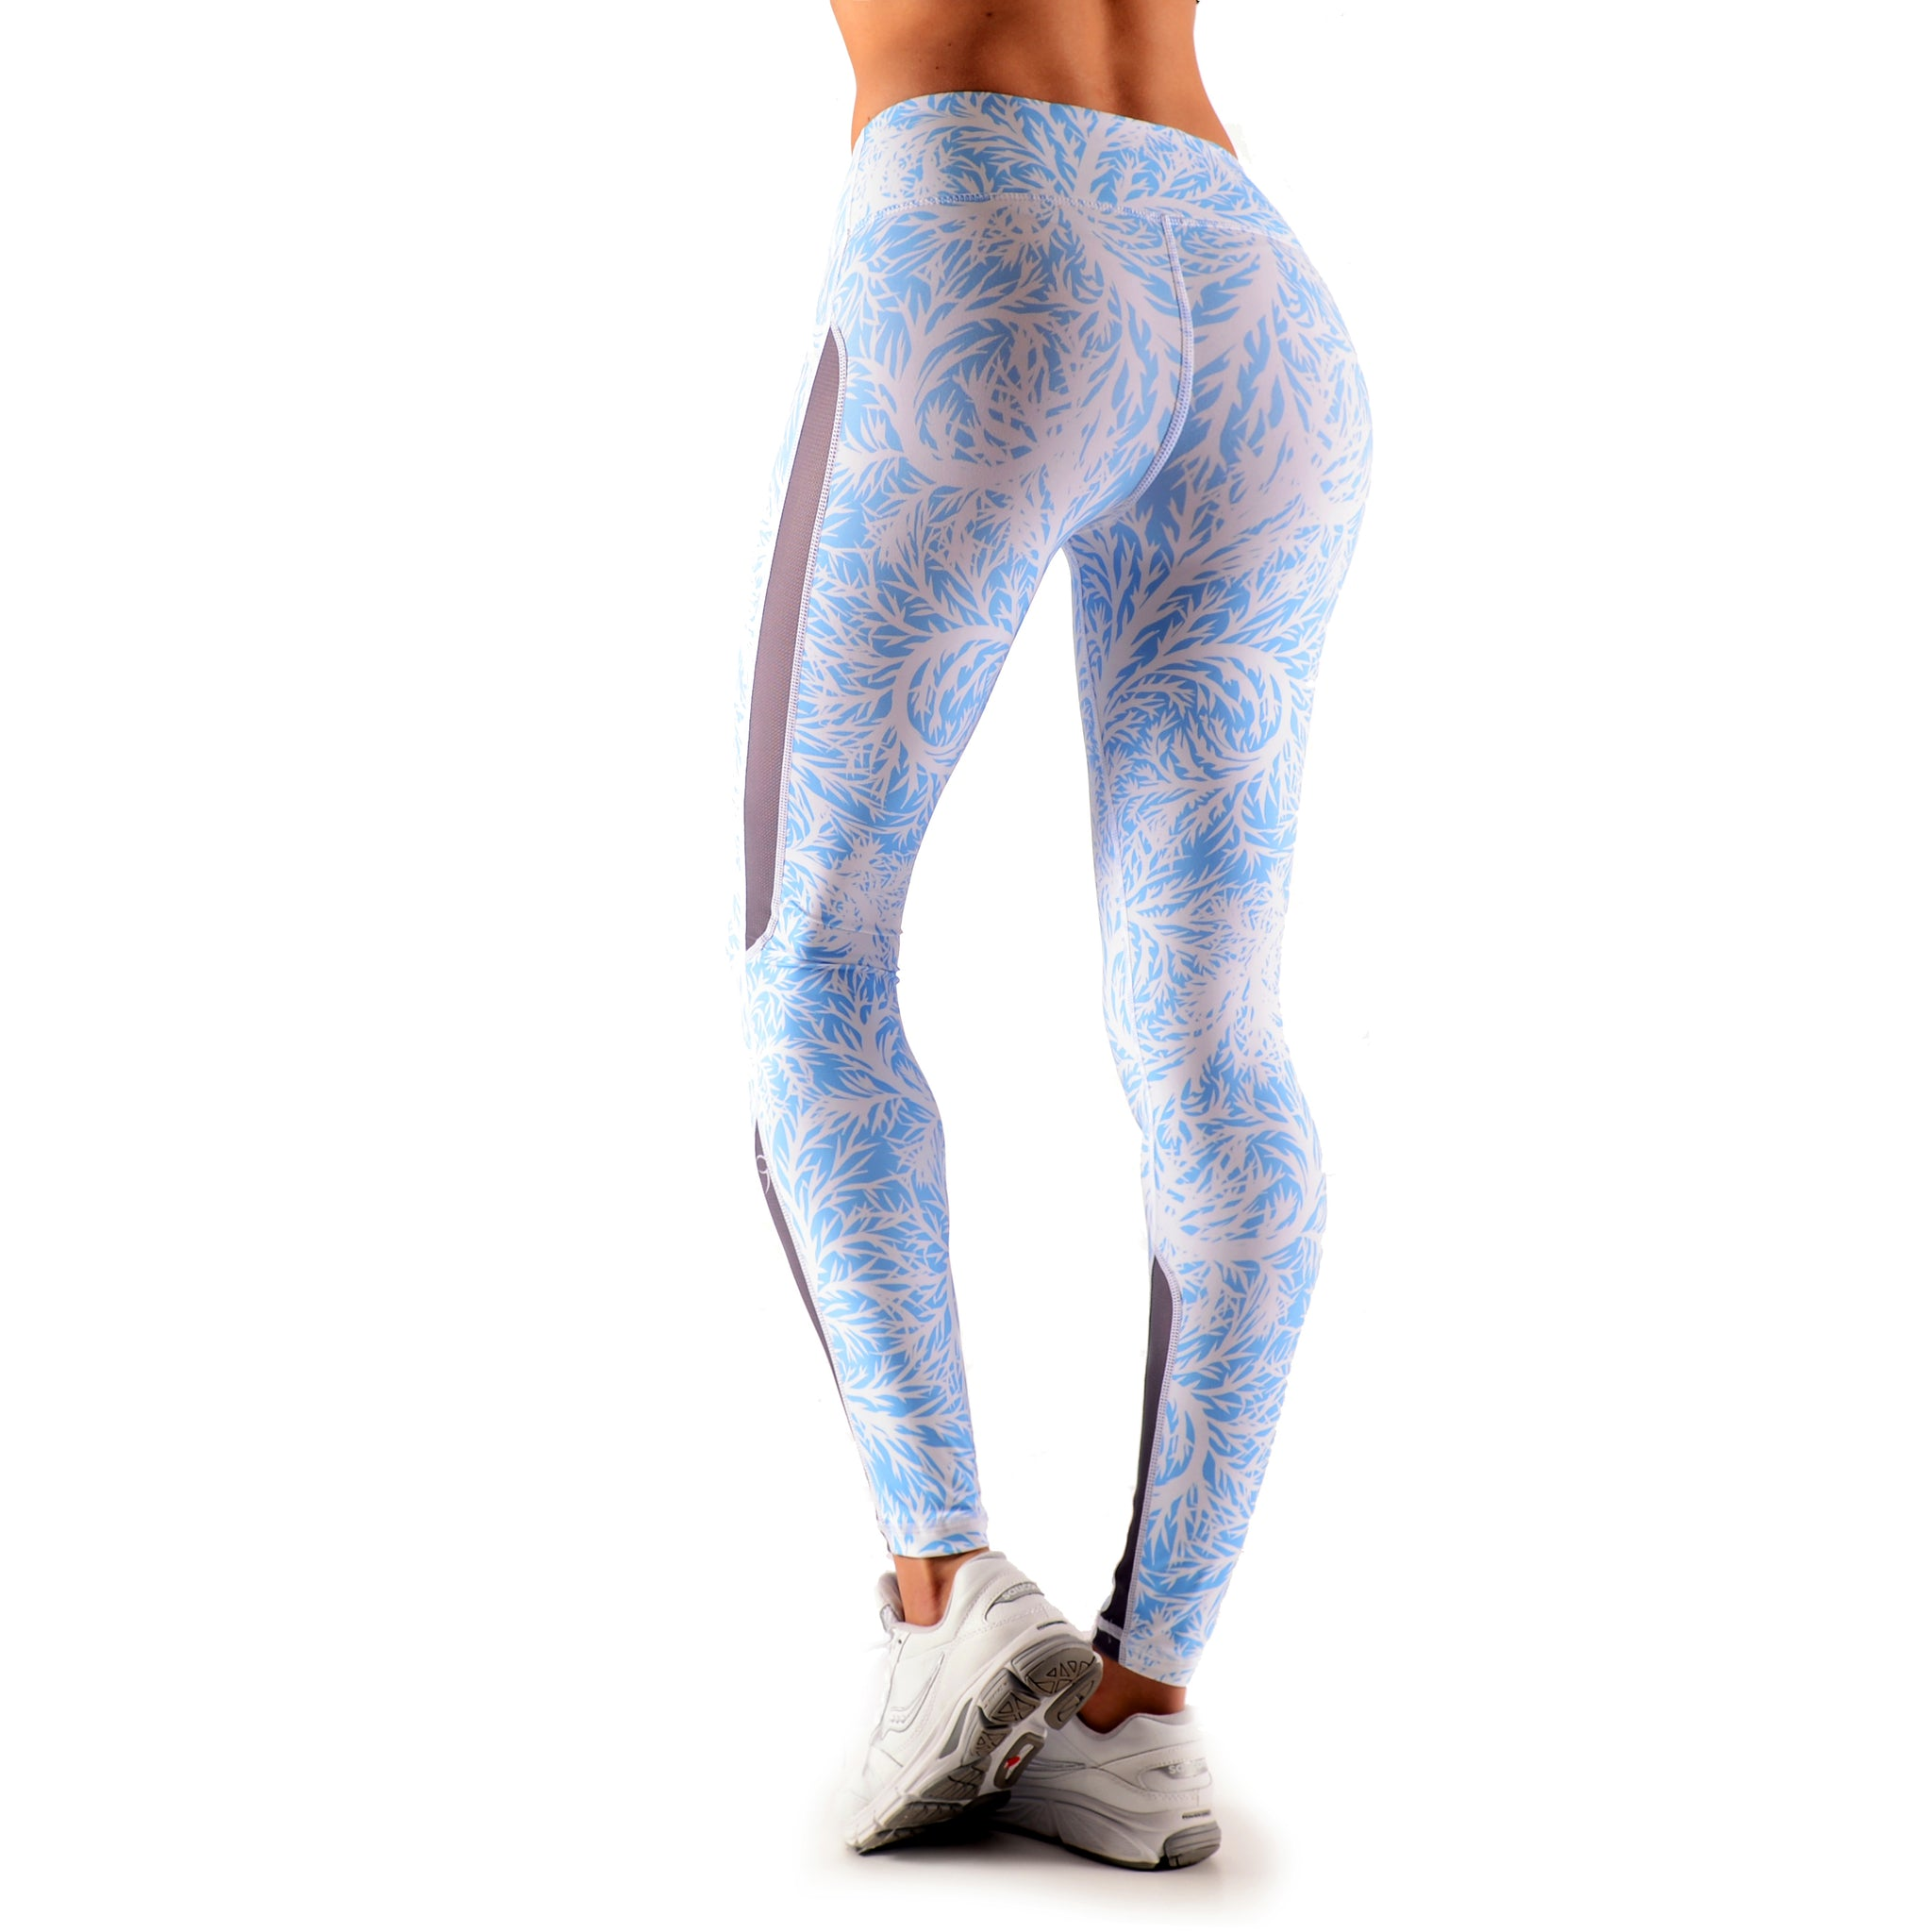 Winter Bloom Full Length Compression Tights